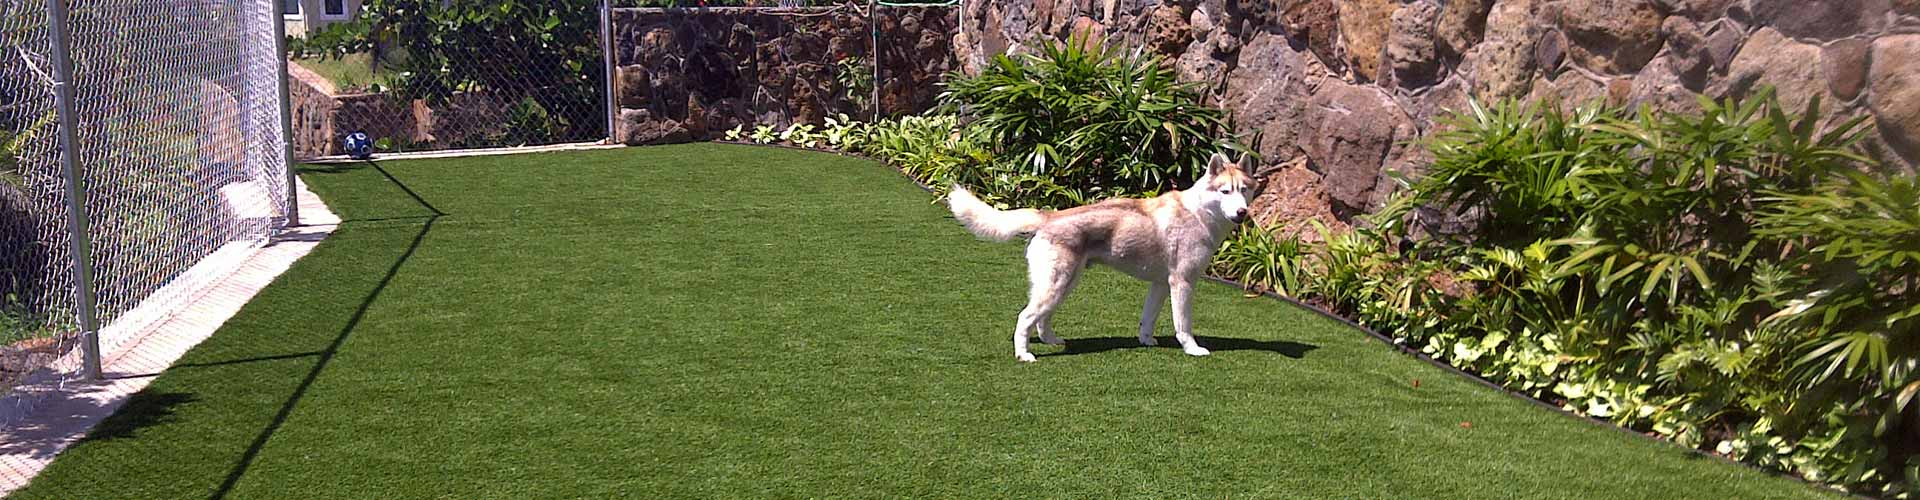 Fake grass dog run installation in Hawaii